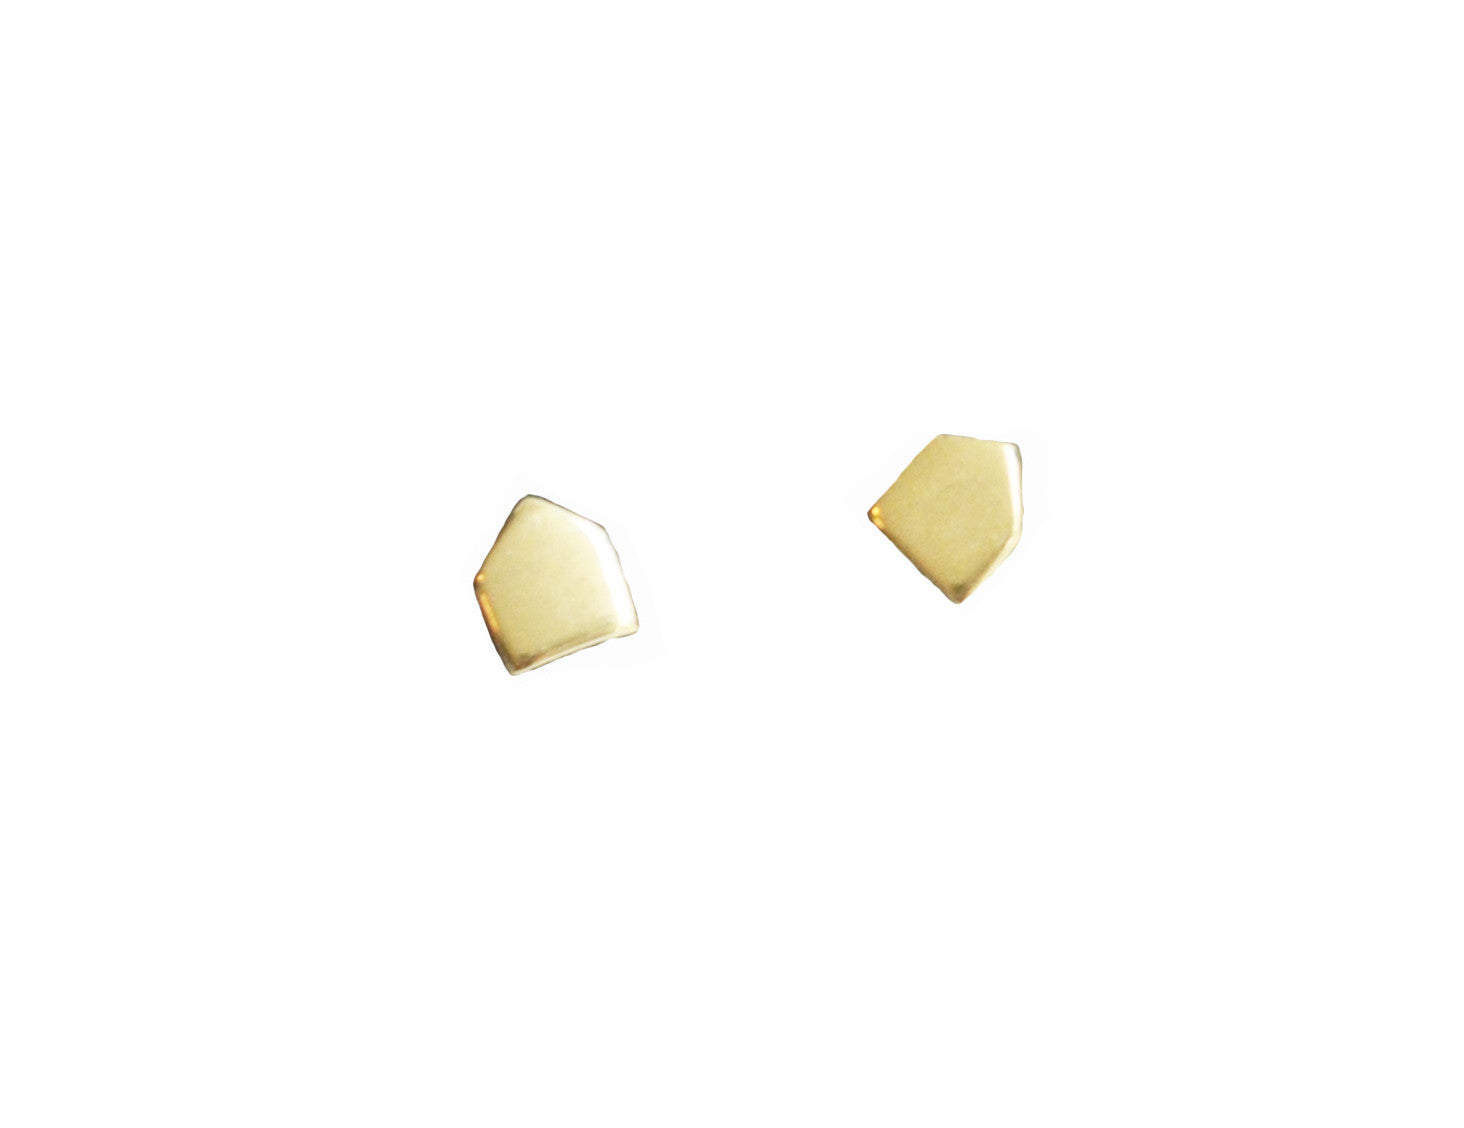 Pentagon Little House Shape Stud Wendy Nichol Fine Jewelry Designer solid 14k Gold Yellow Rose White Sterling Silver simple delicate geometric studs Handmade in NYC New York City First Second Ear Hole Piercing Lower Lobe Upper Lobe Snug Helix Cartilage studs